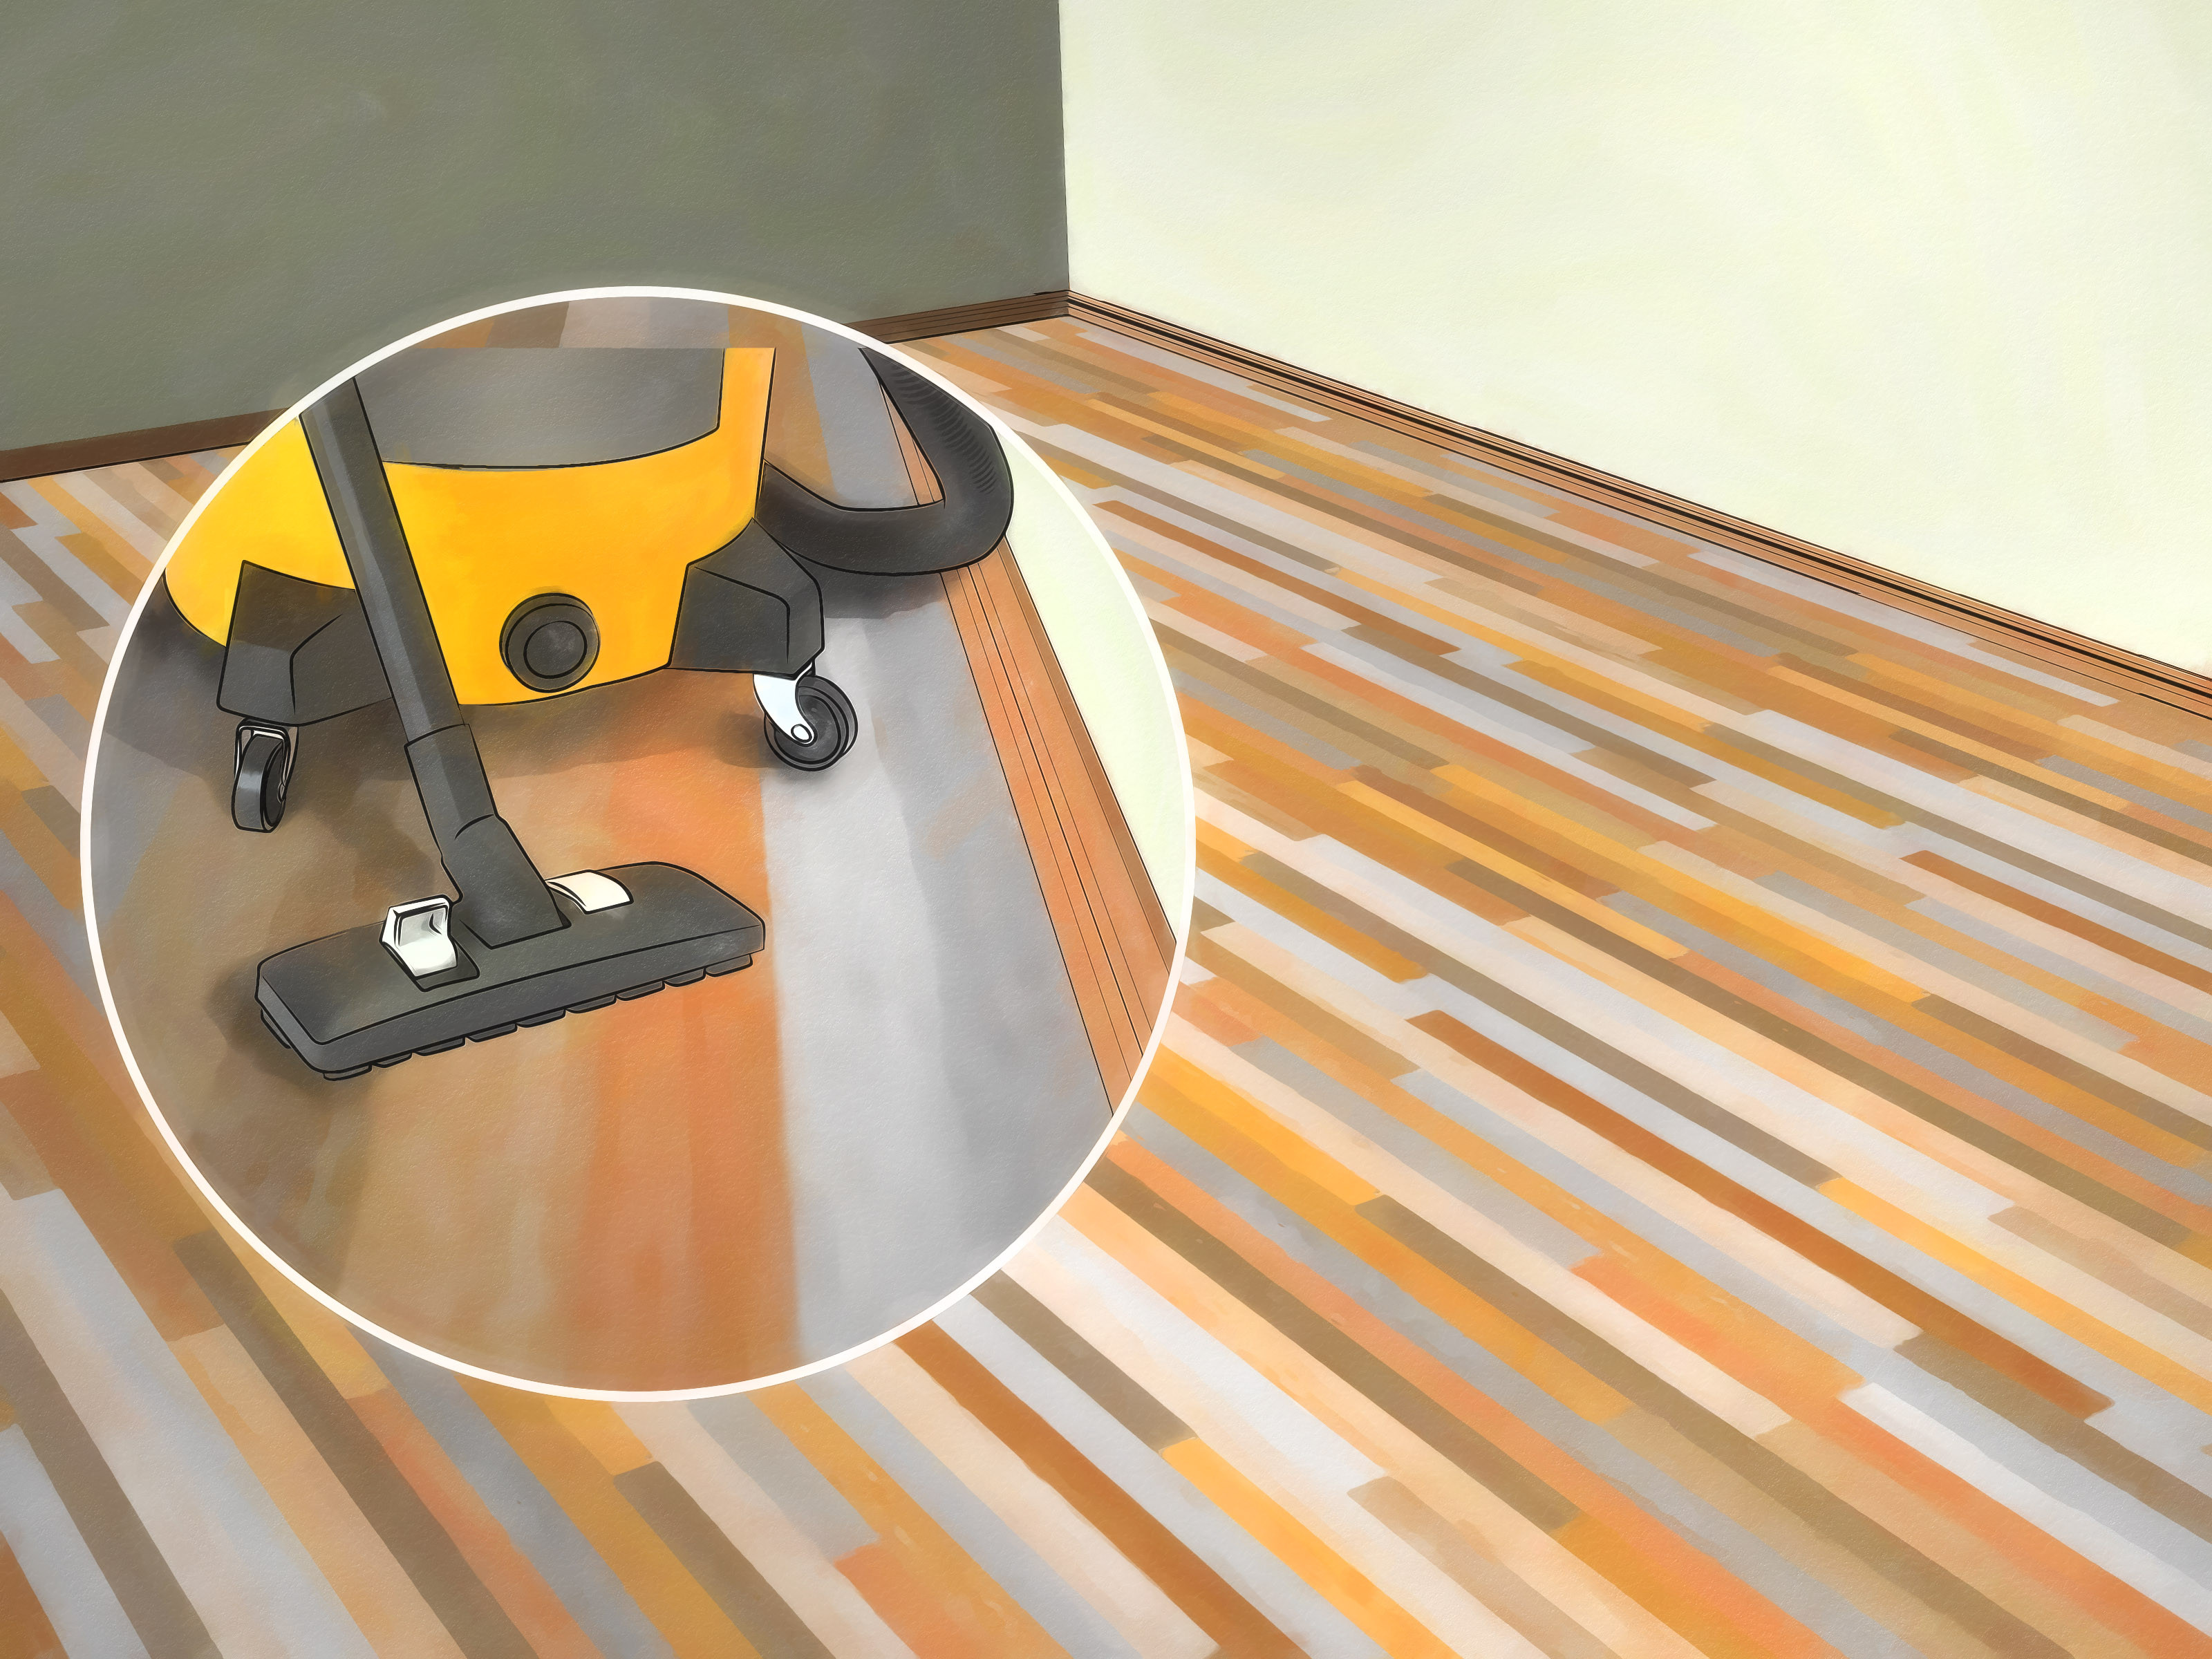 how to match hardwood floors of how to sand hardwood floors with pictures wikihow regarding sand hardwood floors step 22